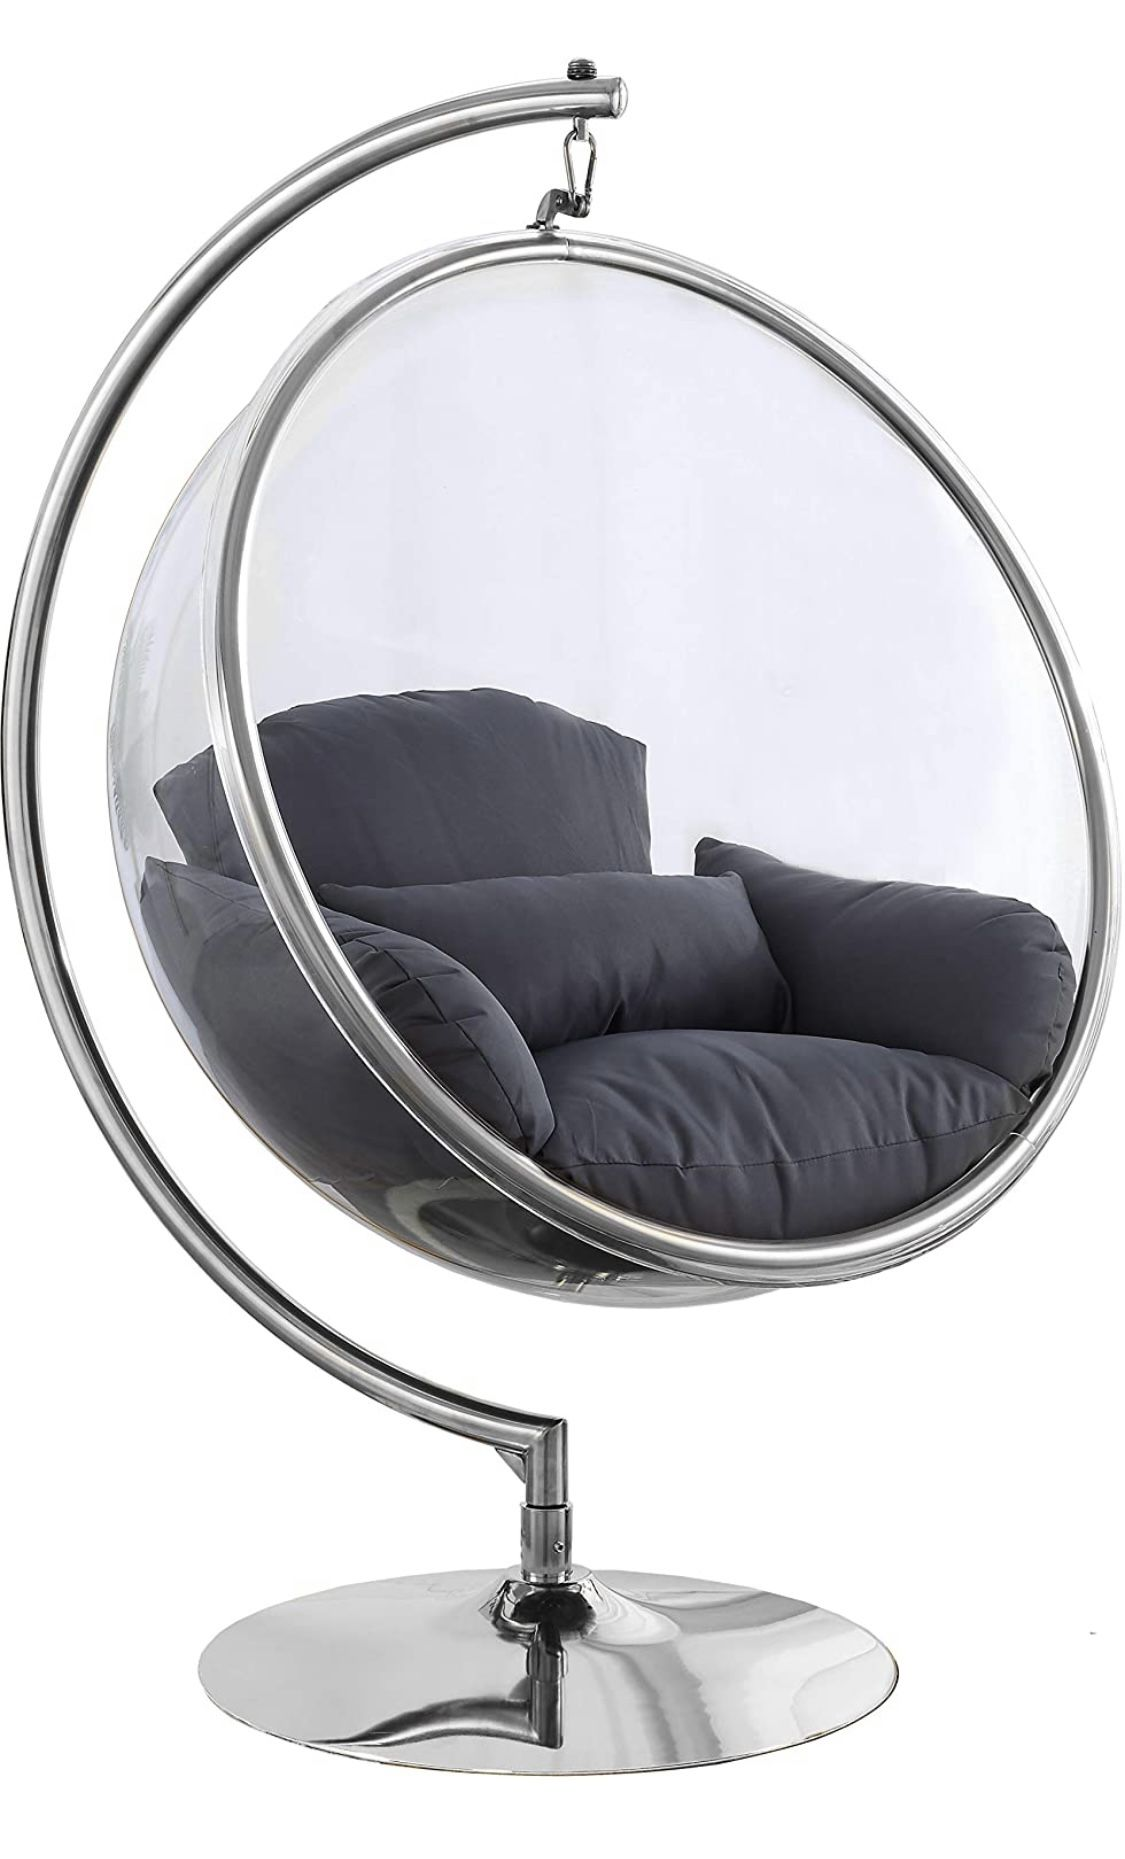 Hanging Bubble Chair Polished Chrome With Stand And Cushion Pillows